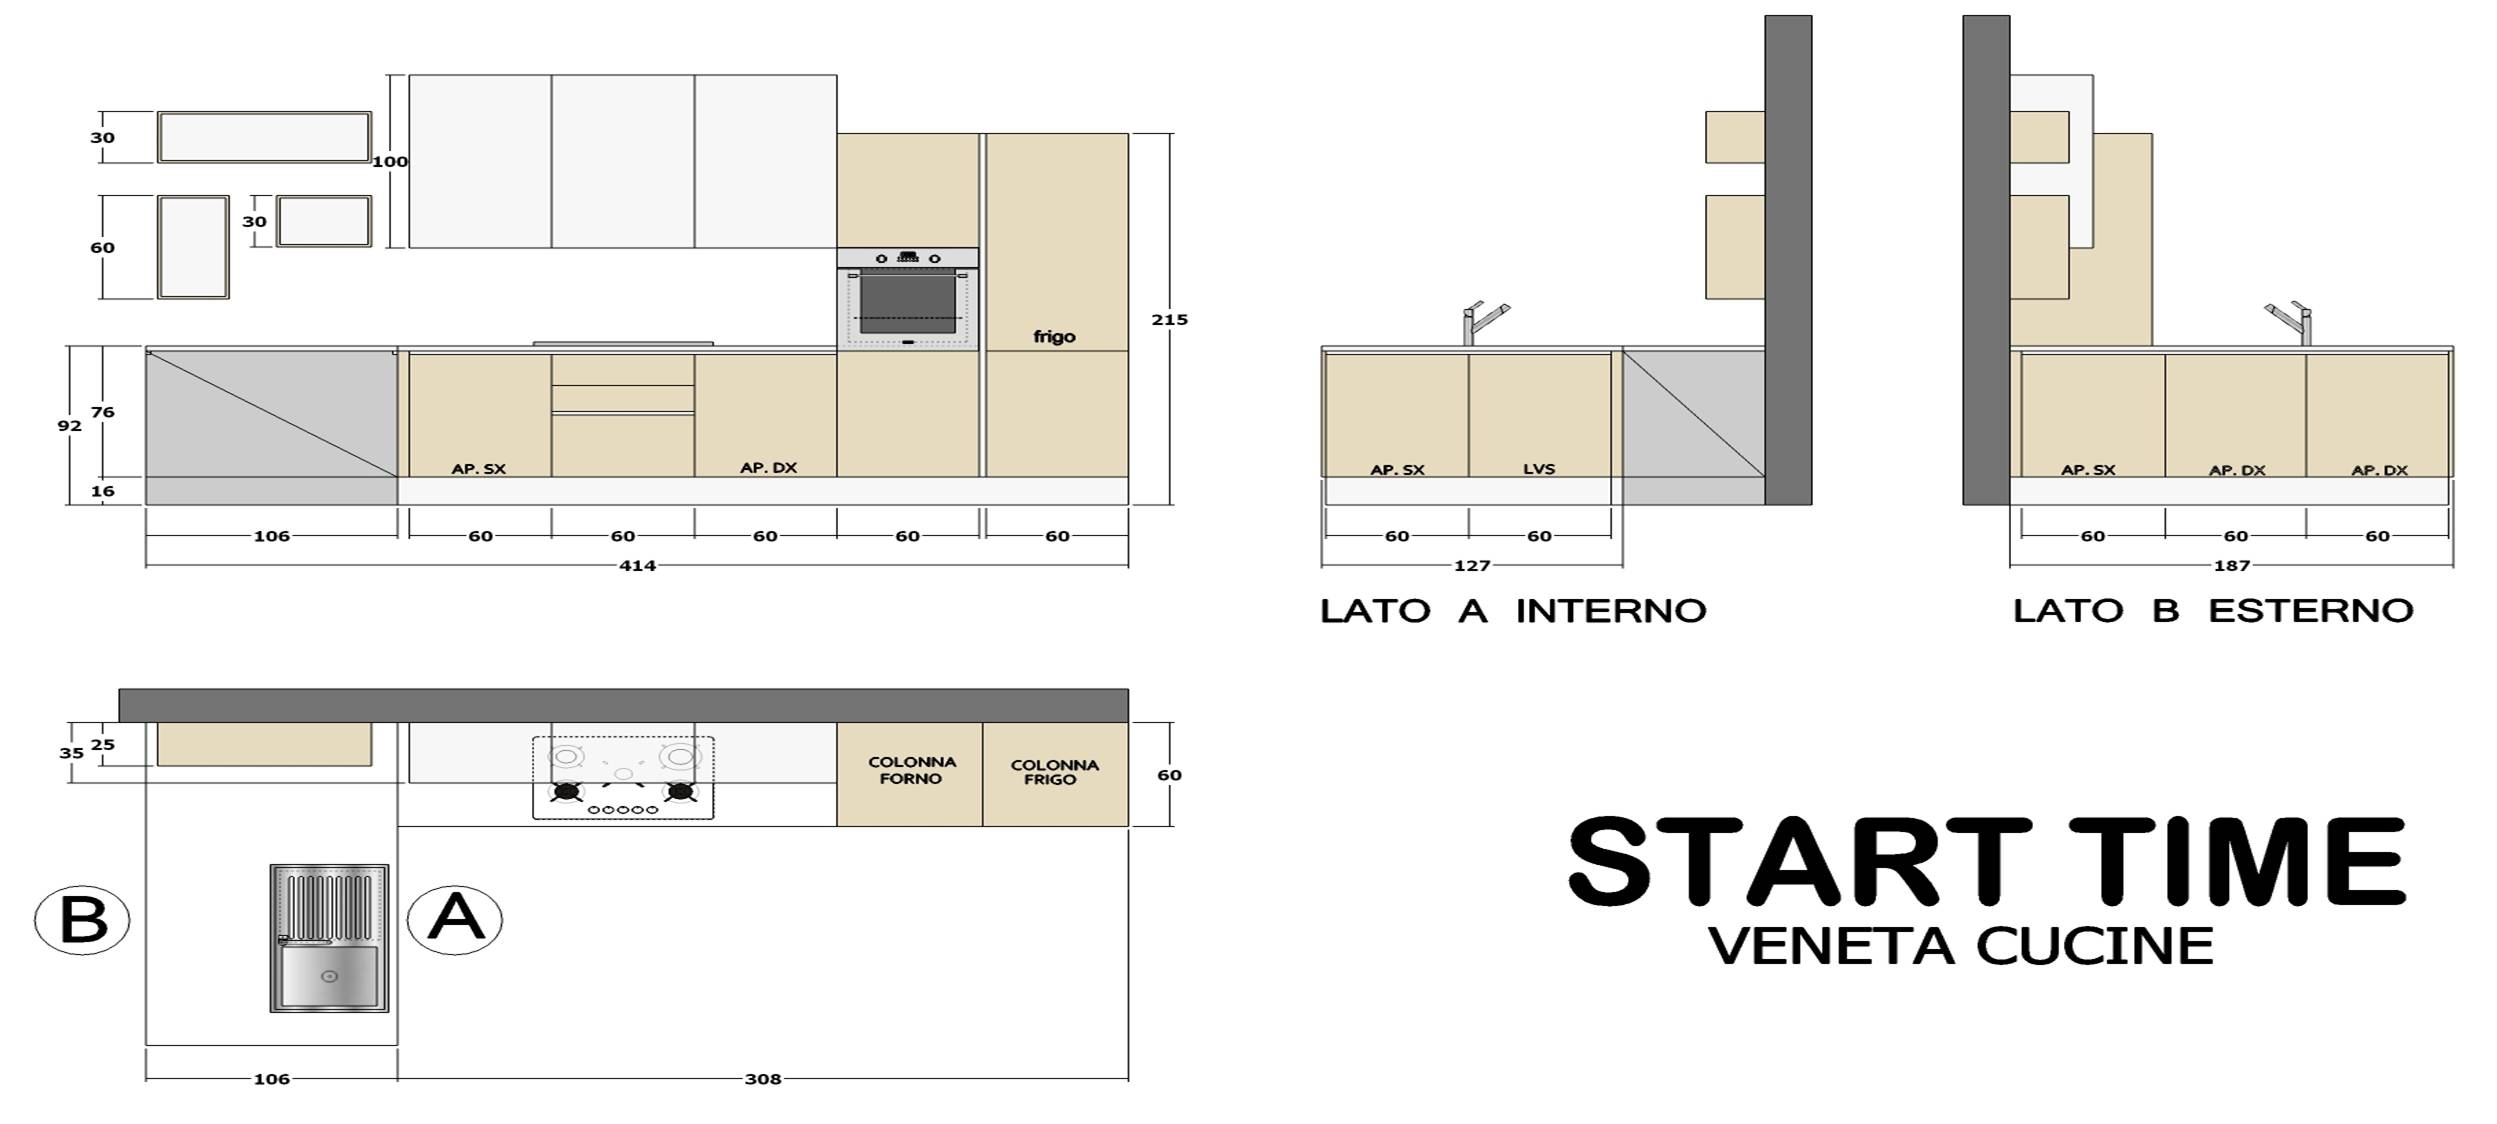 Cucina Veneta Cucine Start time scontata del 40%